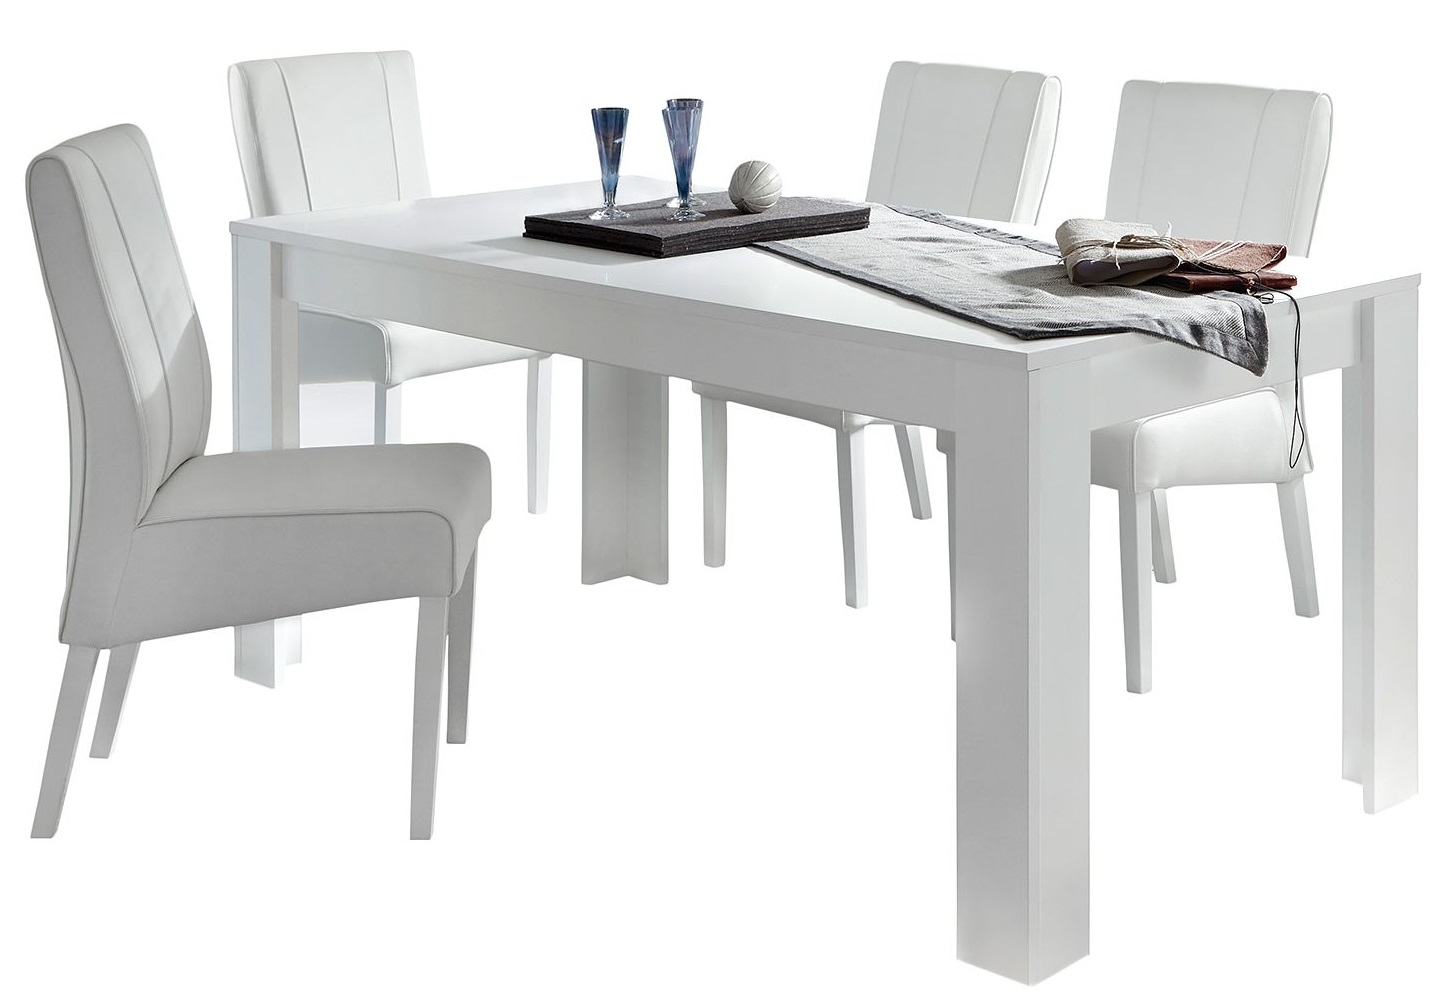 Eettafel Malibu 180 cm breed in wit